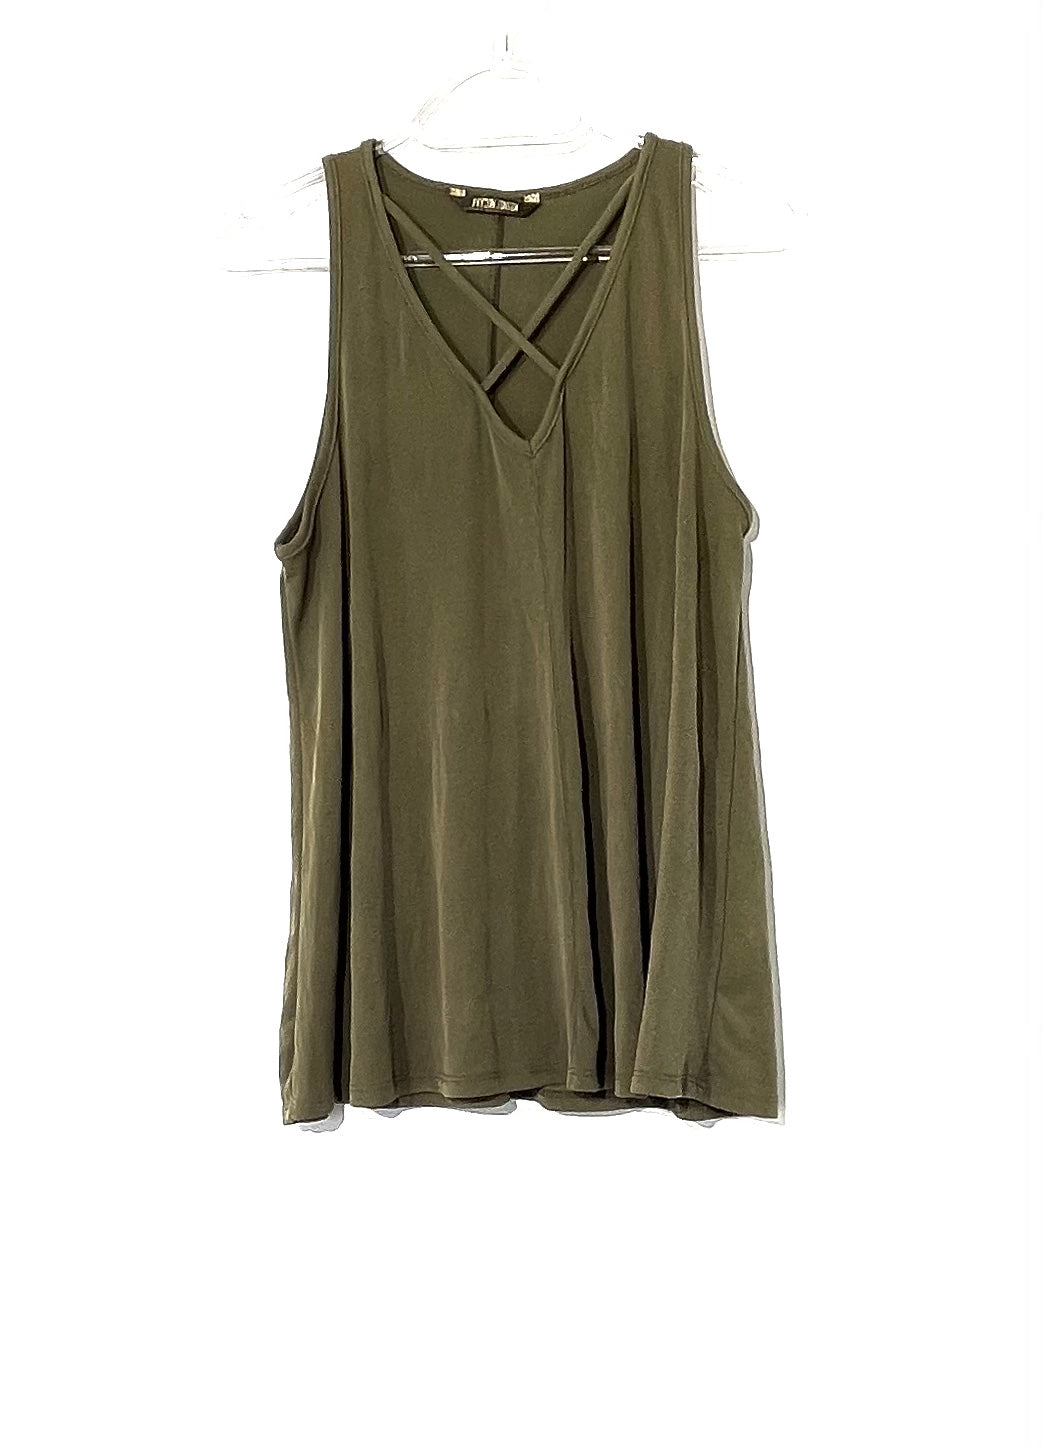 Primary Photo - BRAND: PEYTON JENSEN <BR>STYLE: TOP SLEEVELESS <BR>COLOR: OLIVE <BR>SIZE: M <BR>SKU: 262-26275-73416